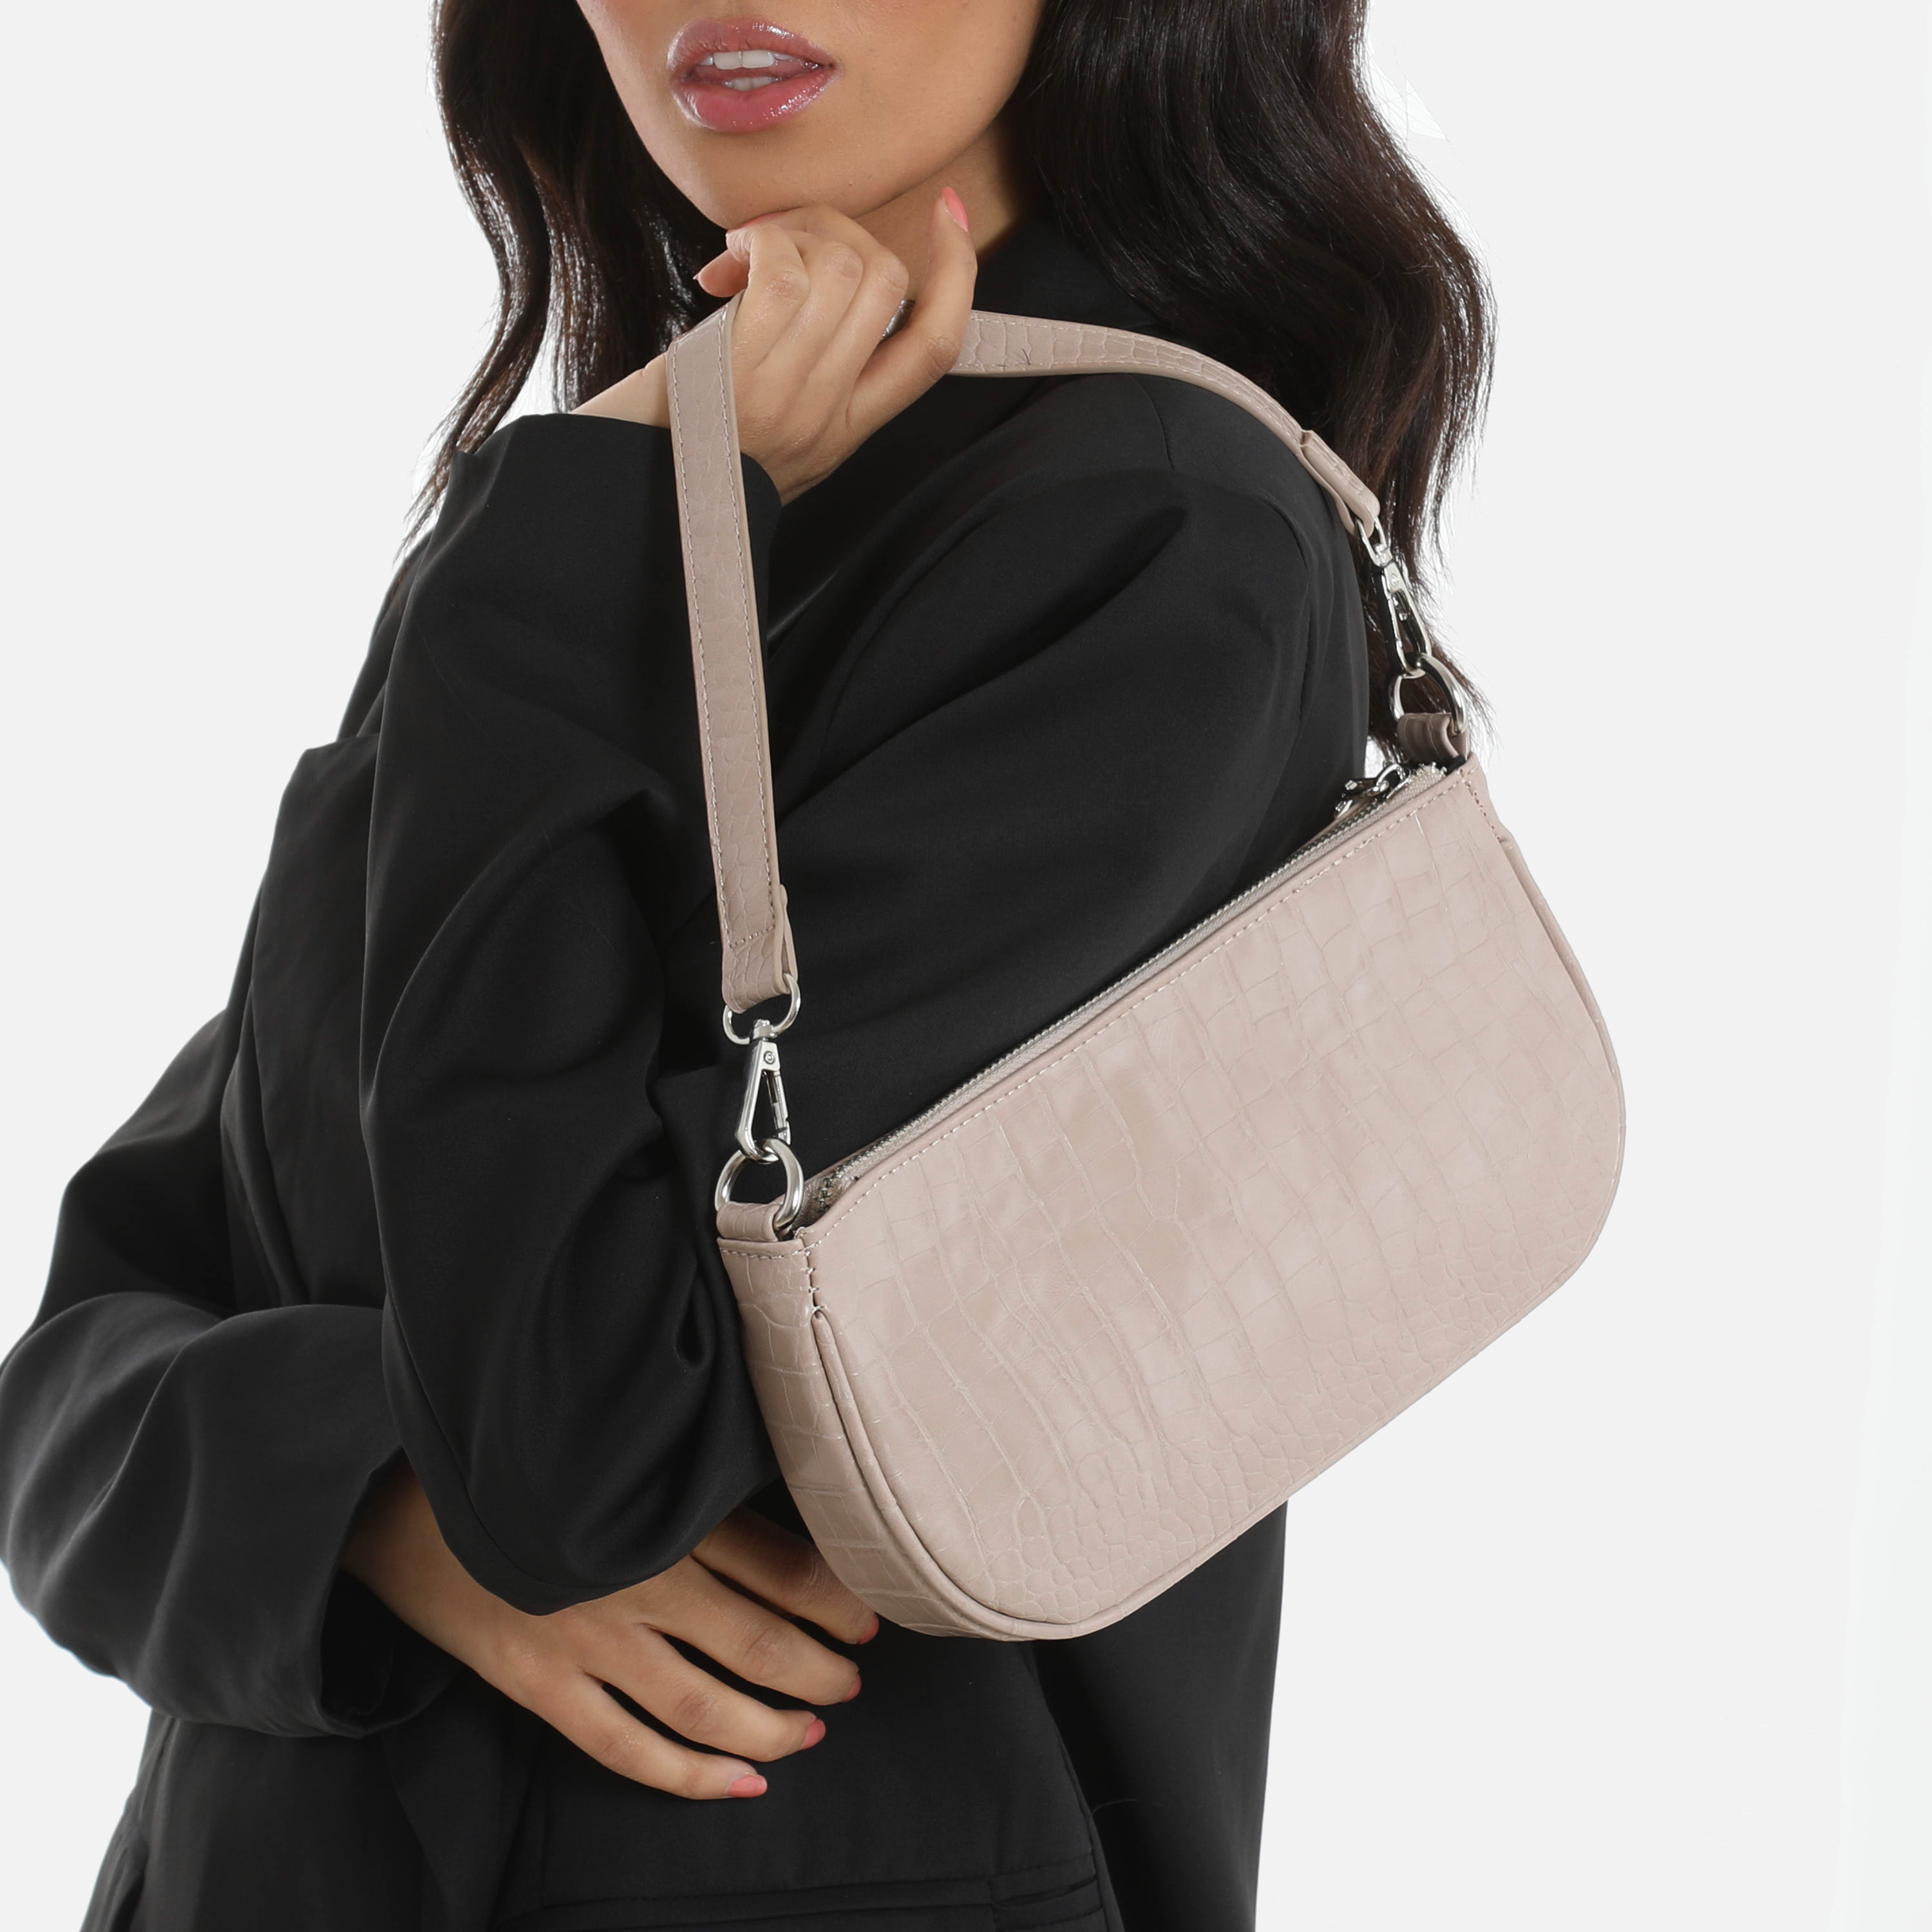 Baguette Bag In Nude Print Faux Leather